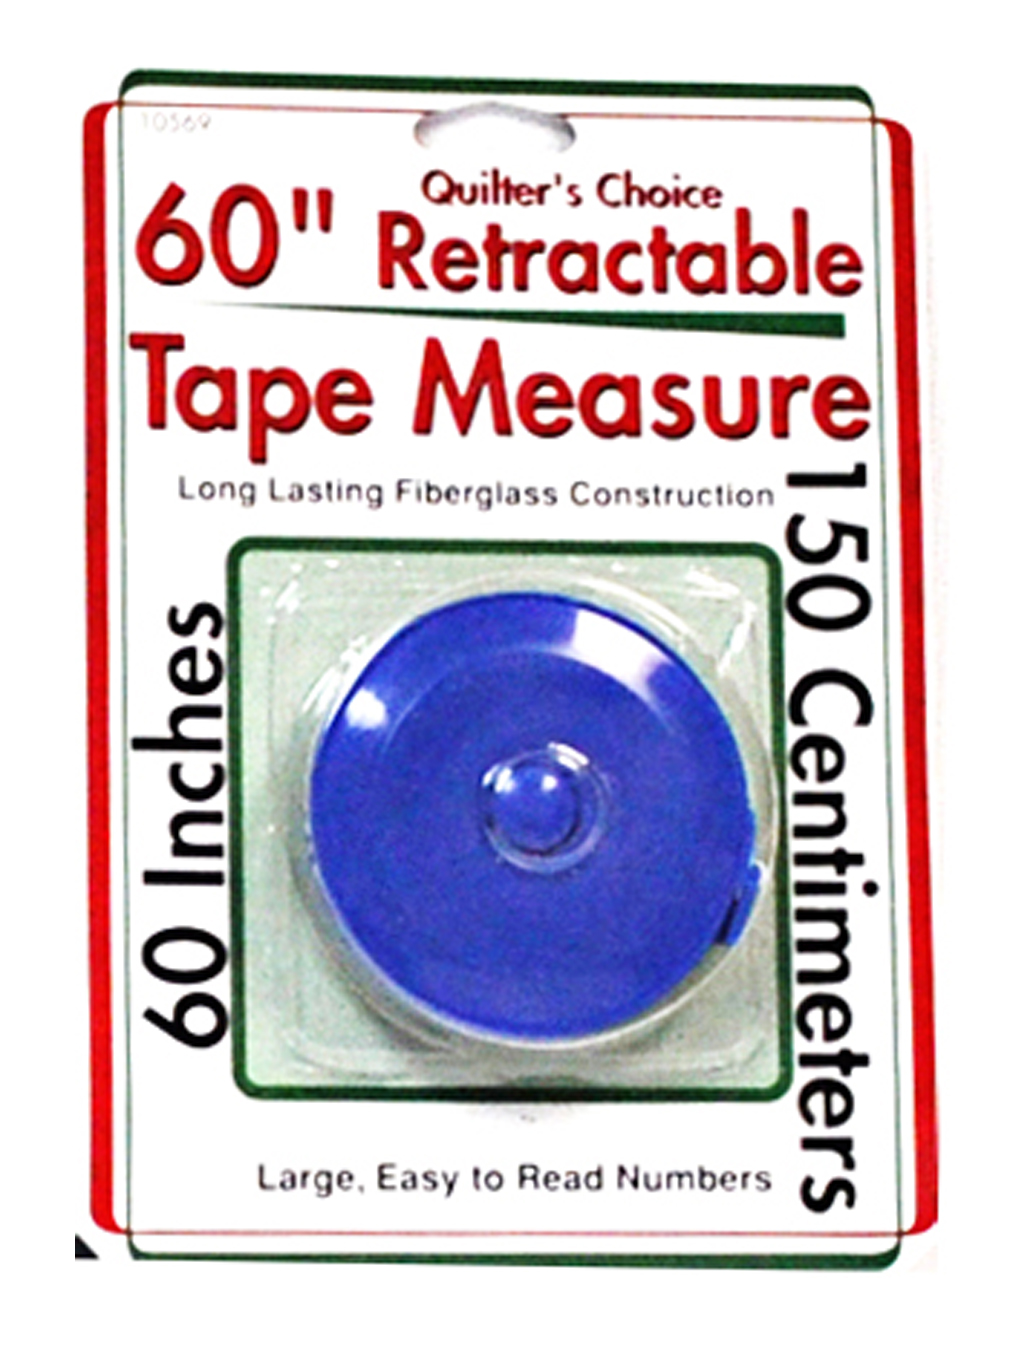 quilters choice 60 inch retractable tape measure blue